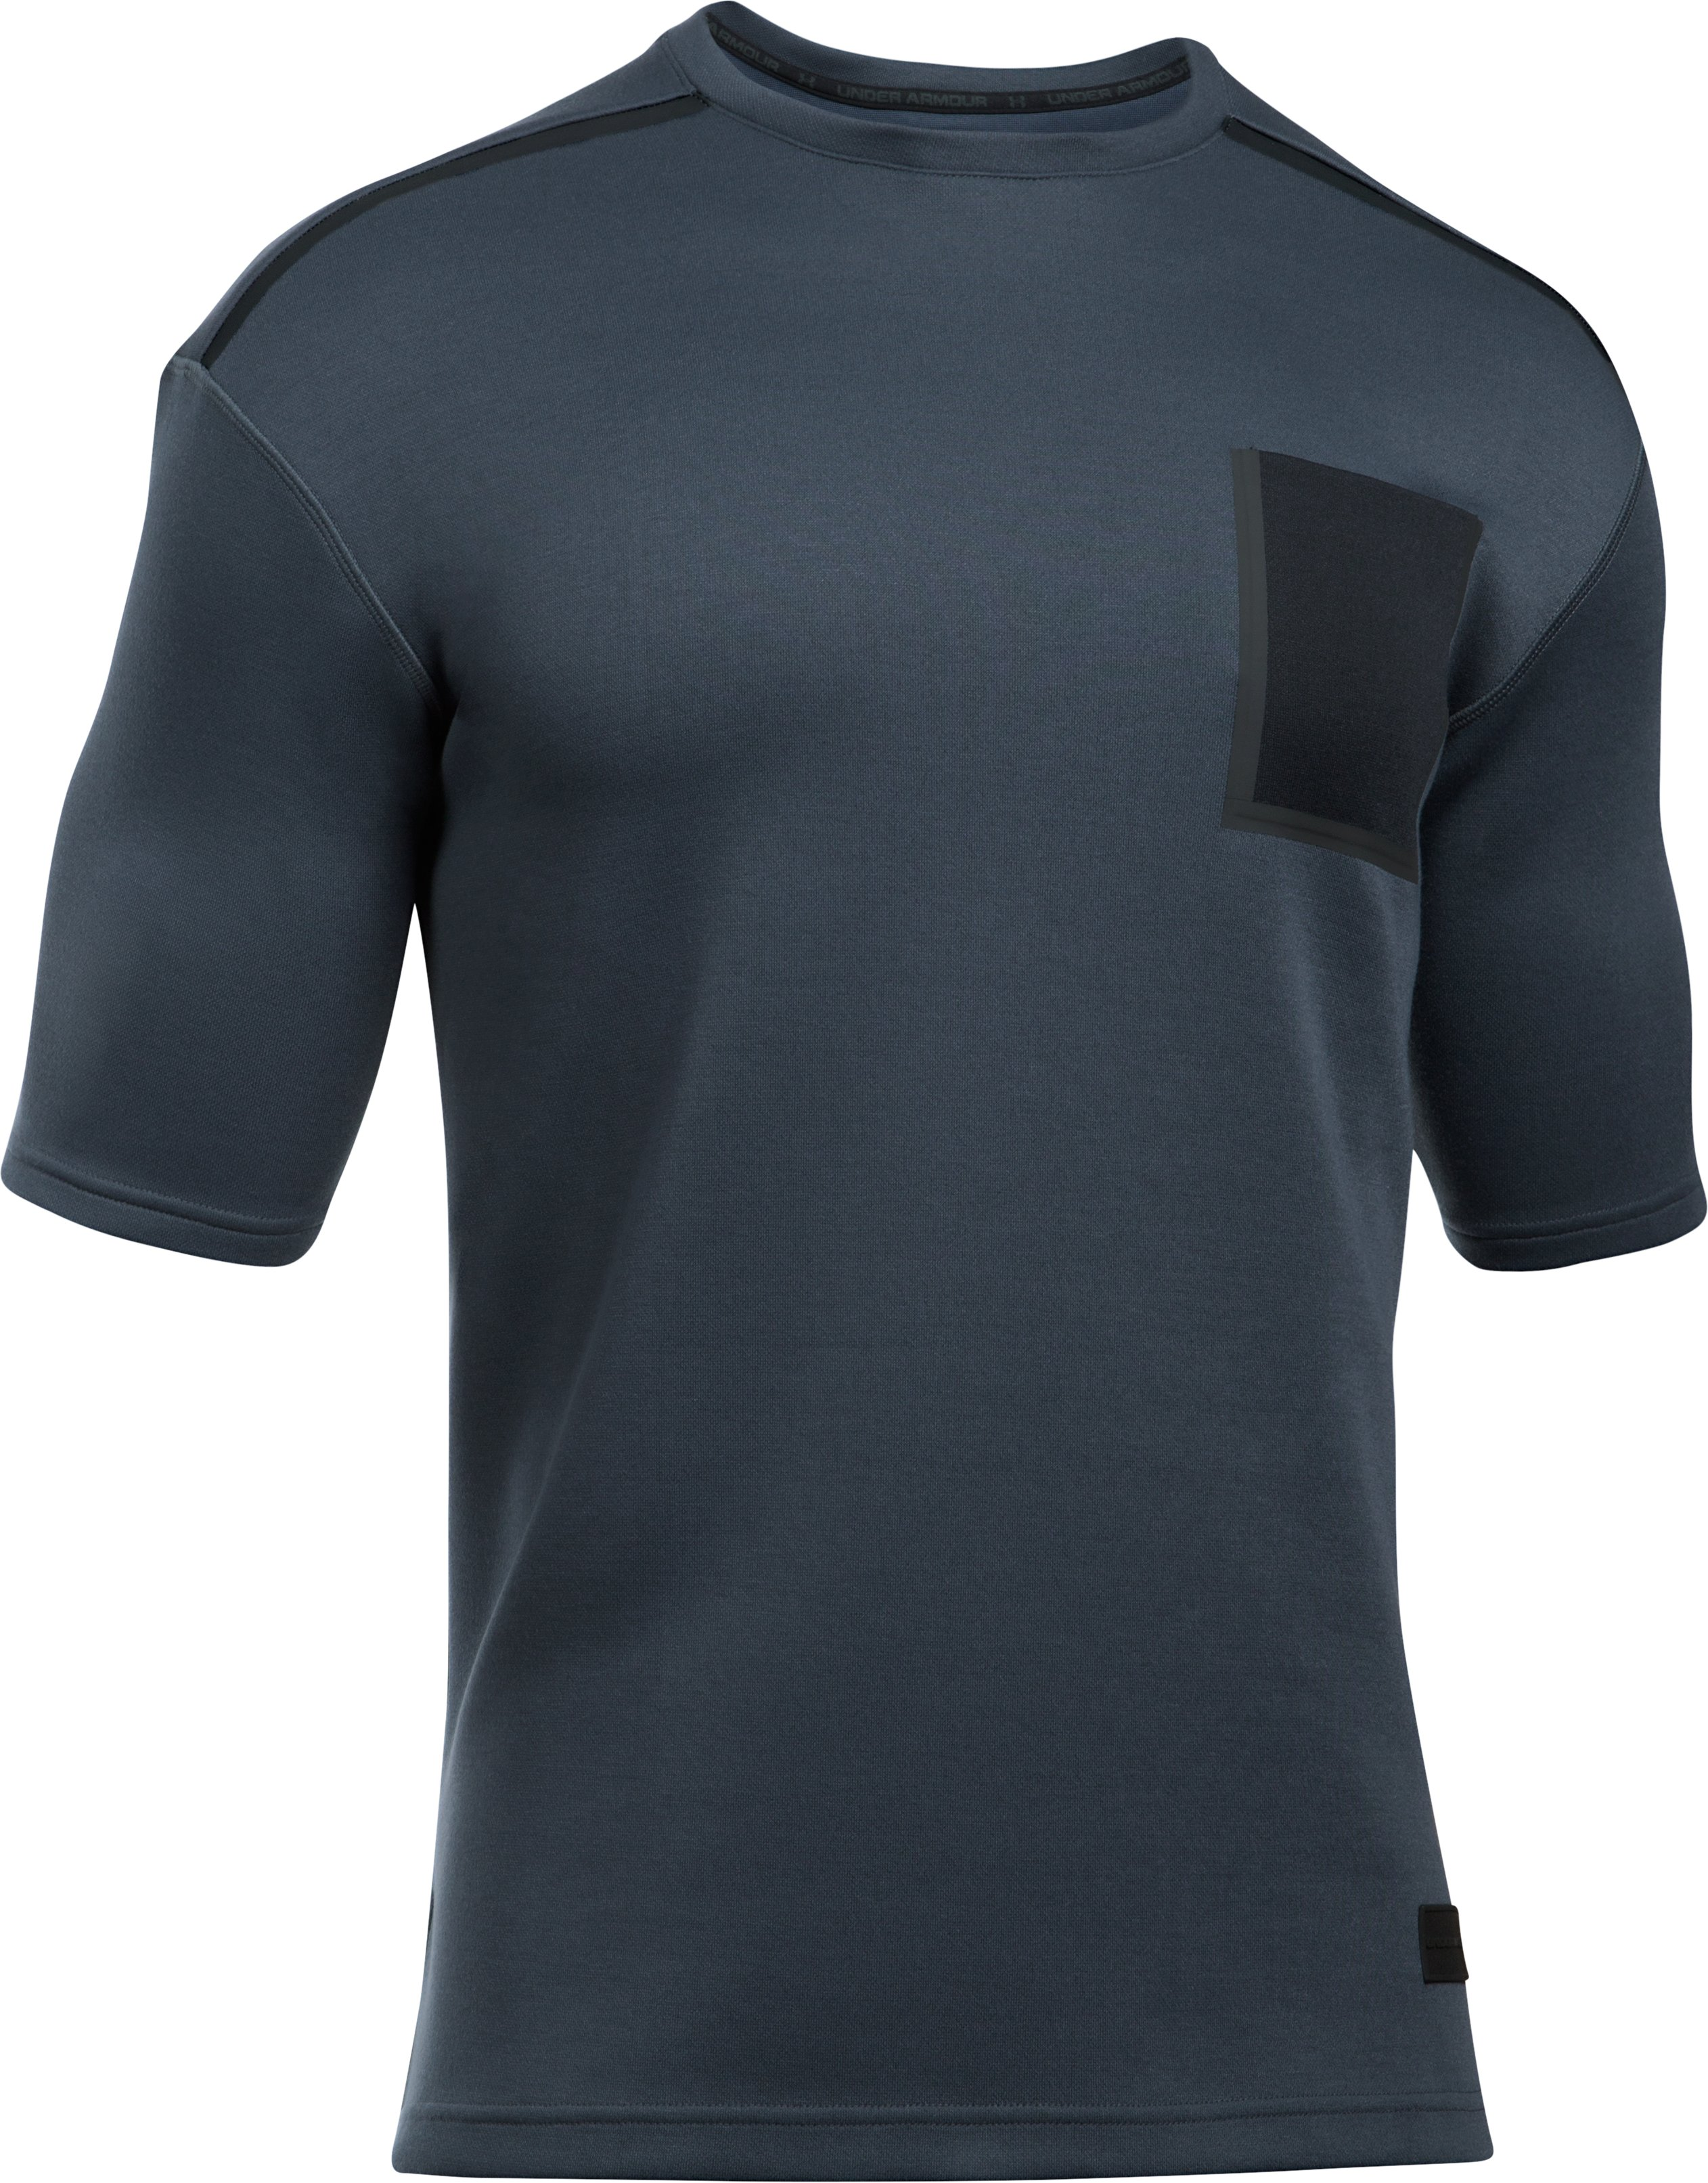 Men's UA Pursuit Open Space ½ Sleeve, STEALTH GRAY, undefined